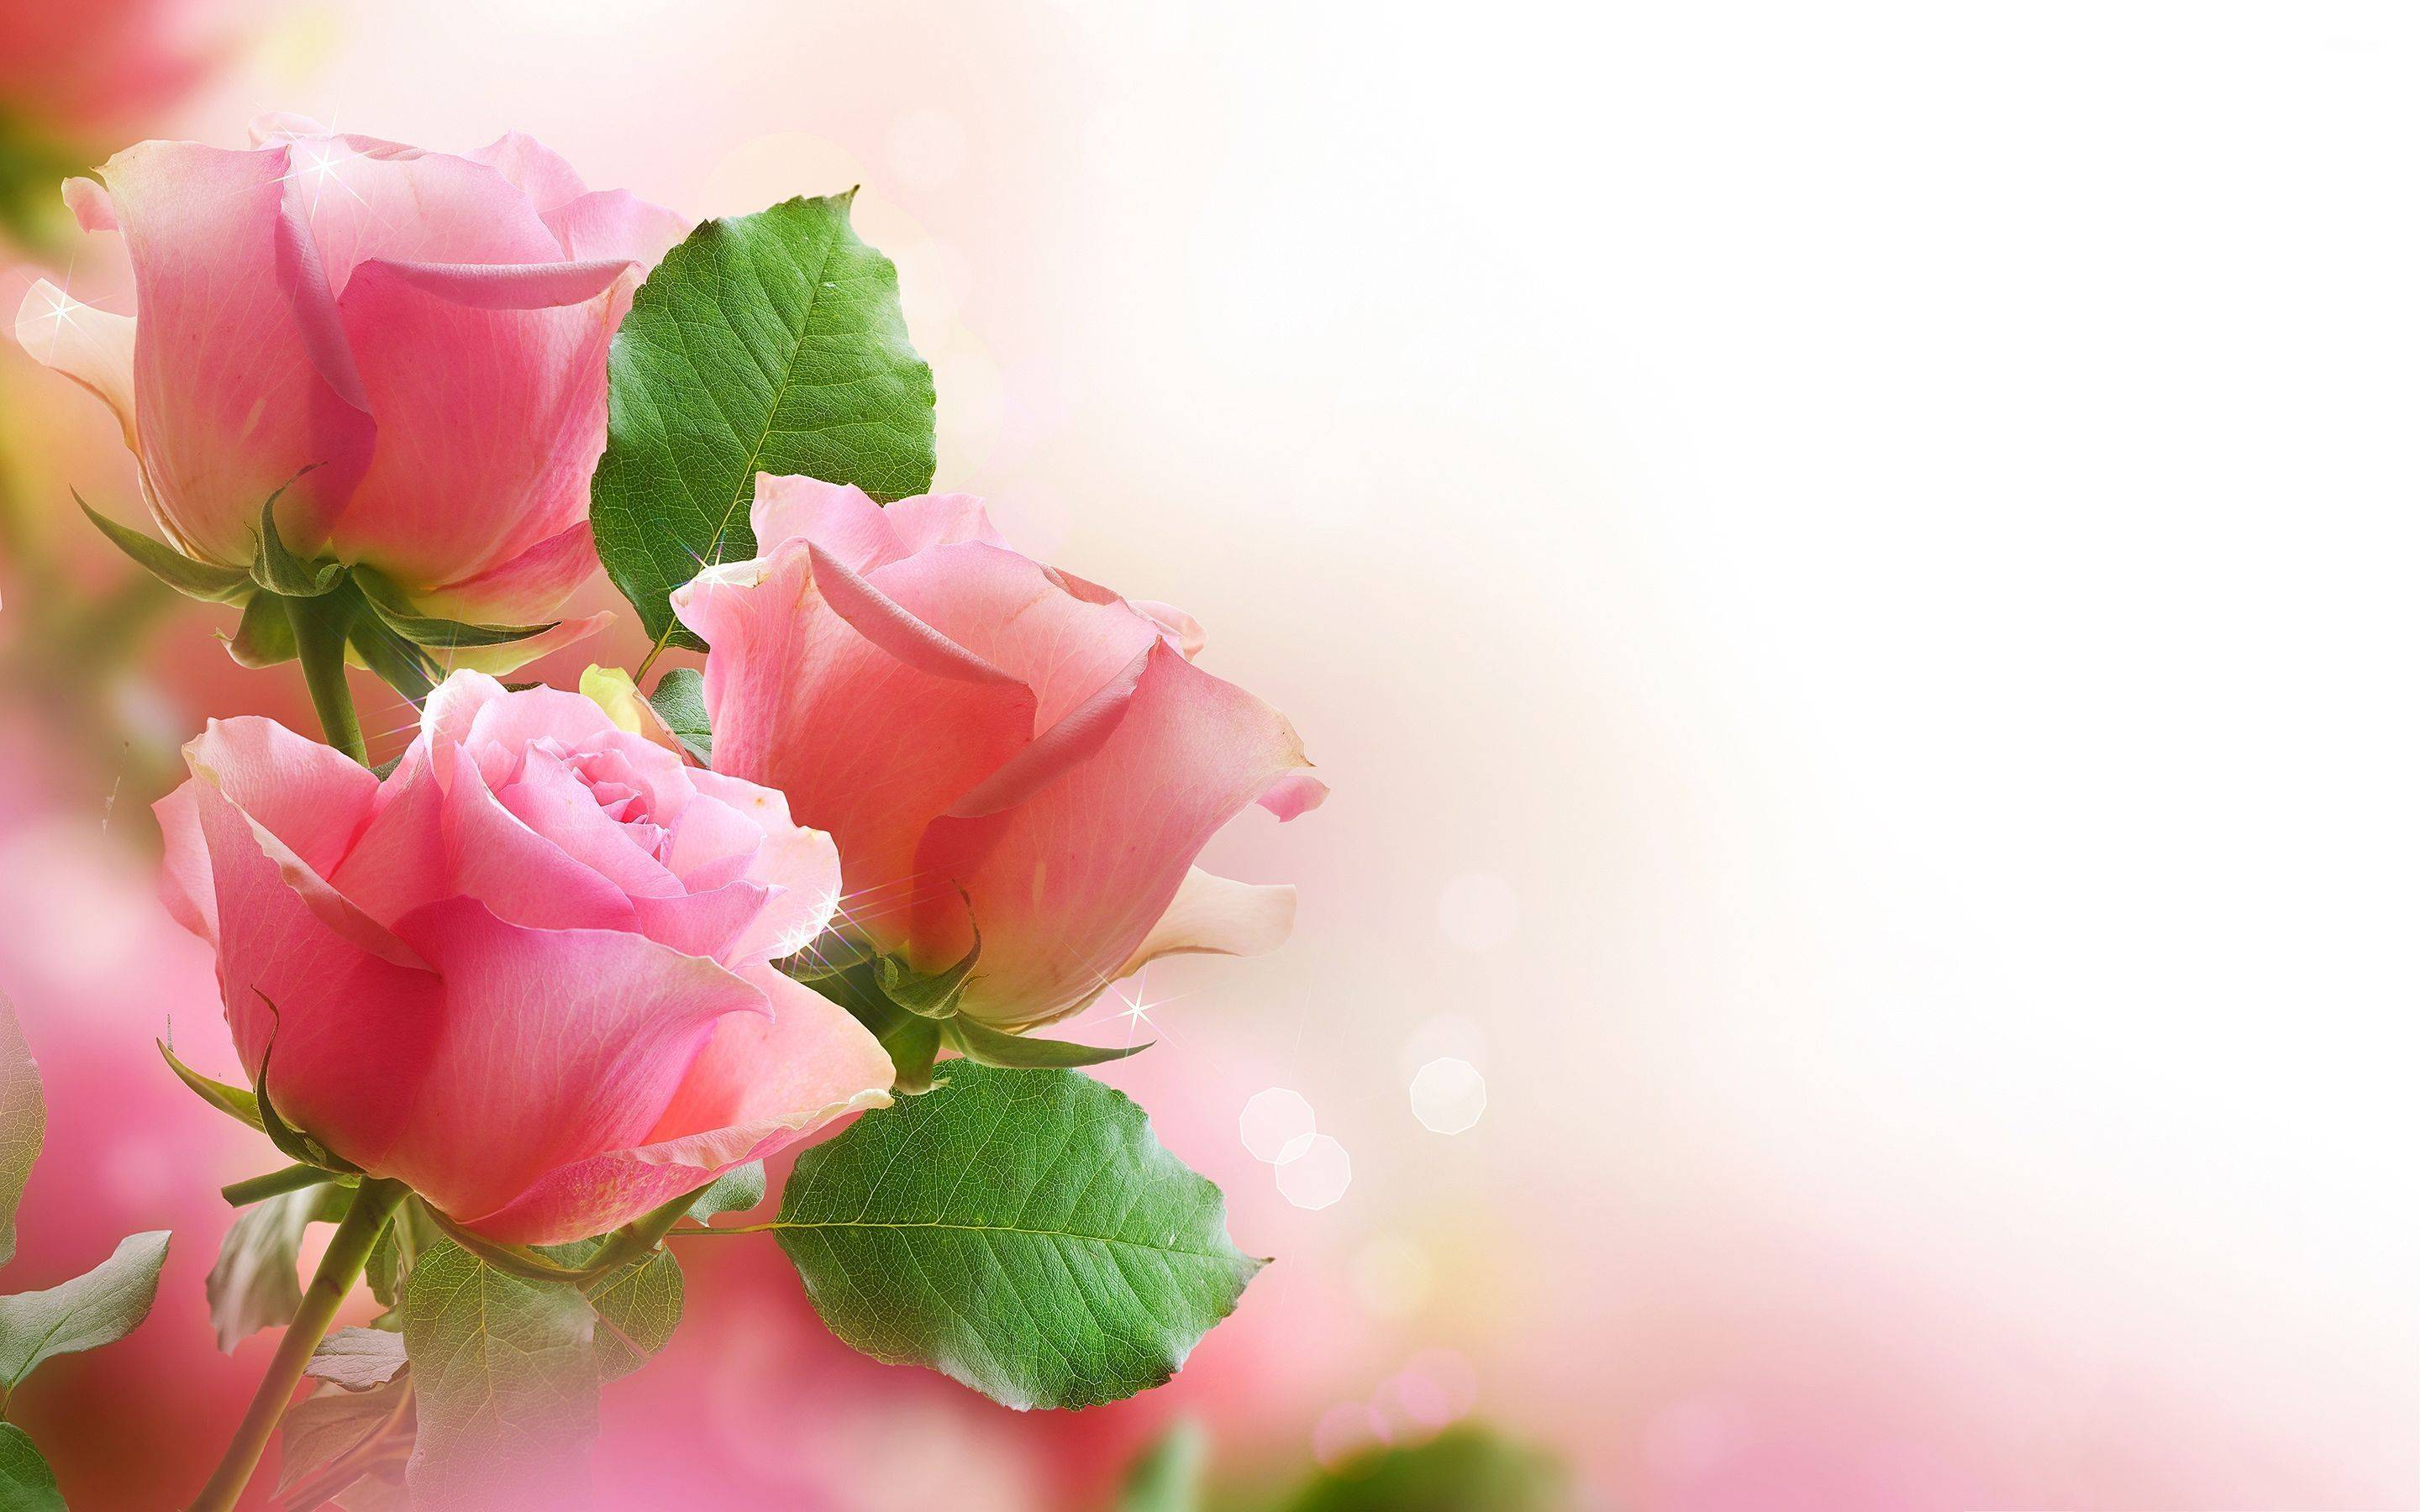 Hd Pink Rose Flowers Wallpaper Full Size Hire Backgrounds For ...